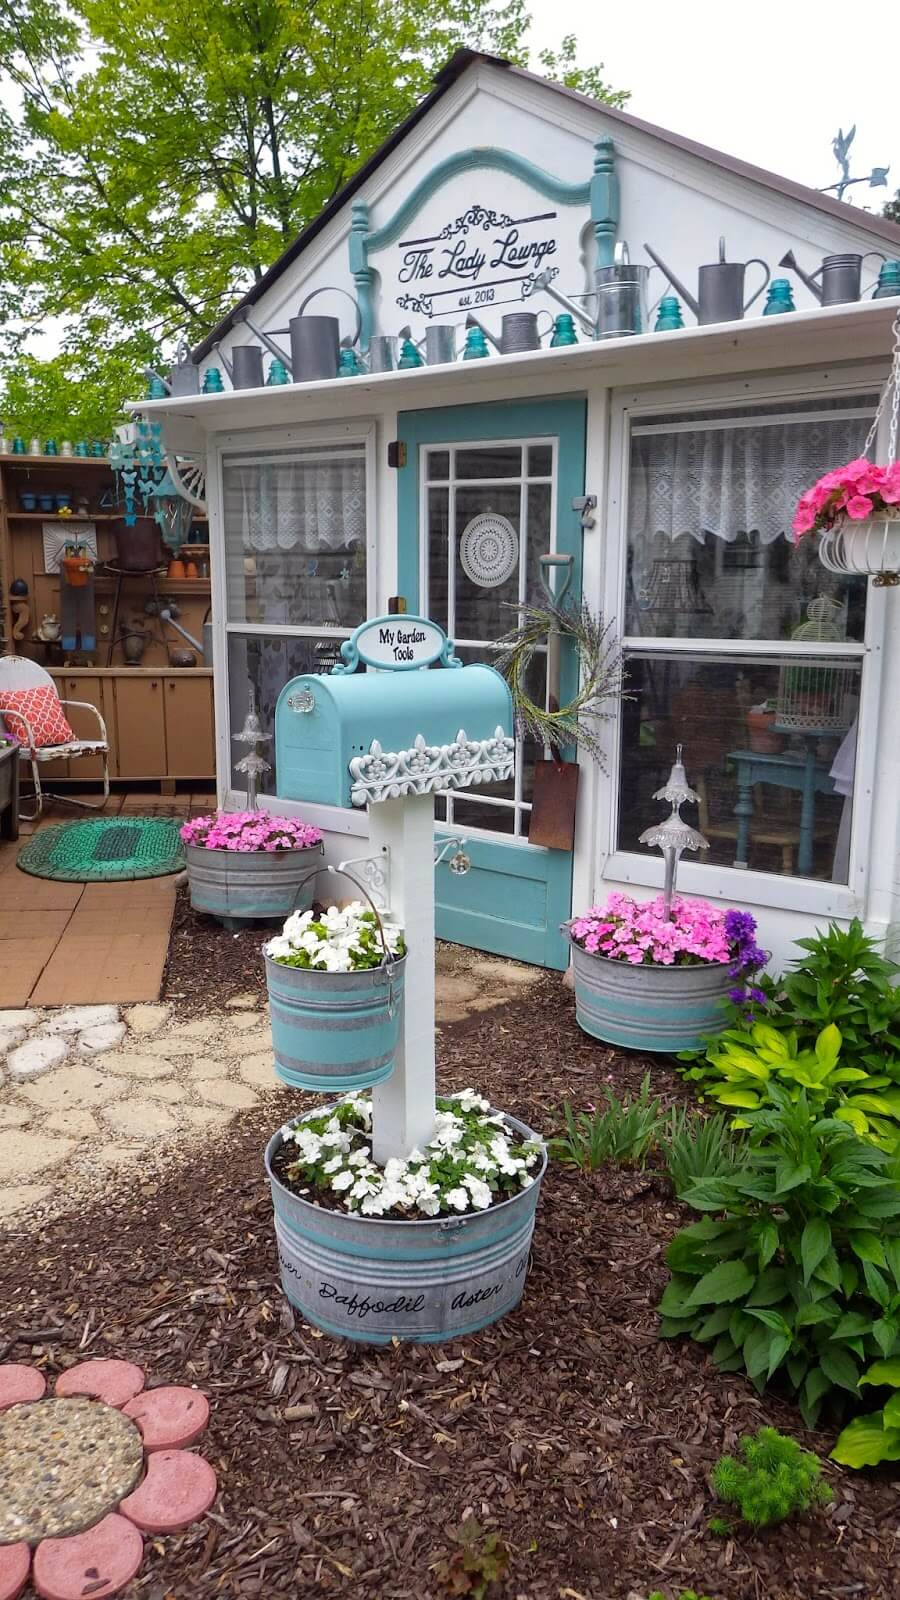 Lady Lounge with Mailbox in Teal and White